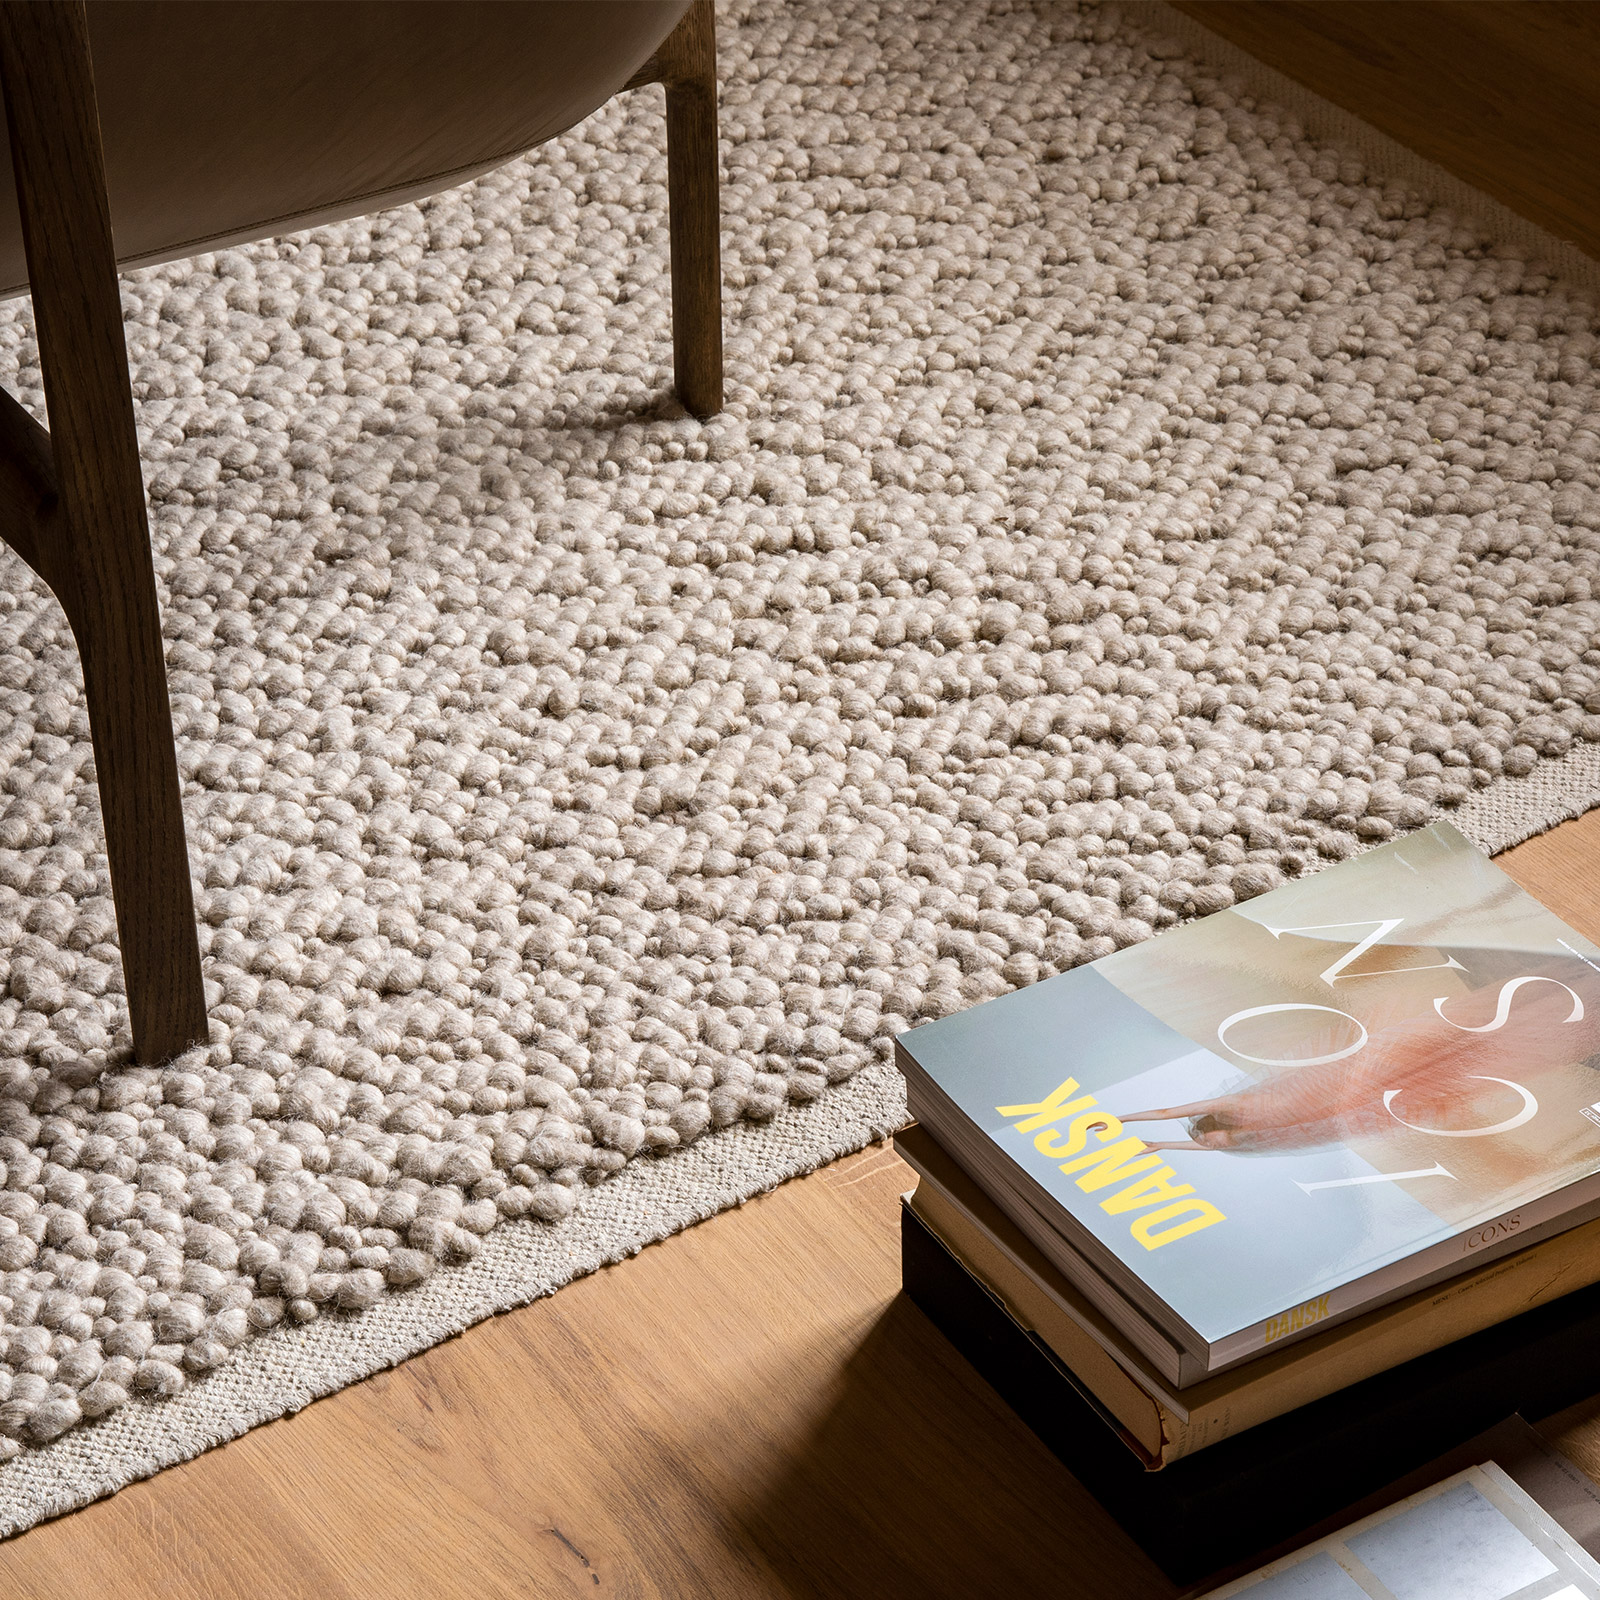 textured cream wool rug on wooden floor with art magazines